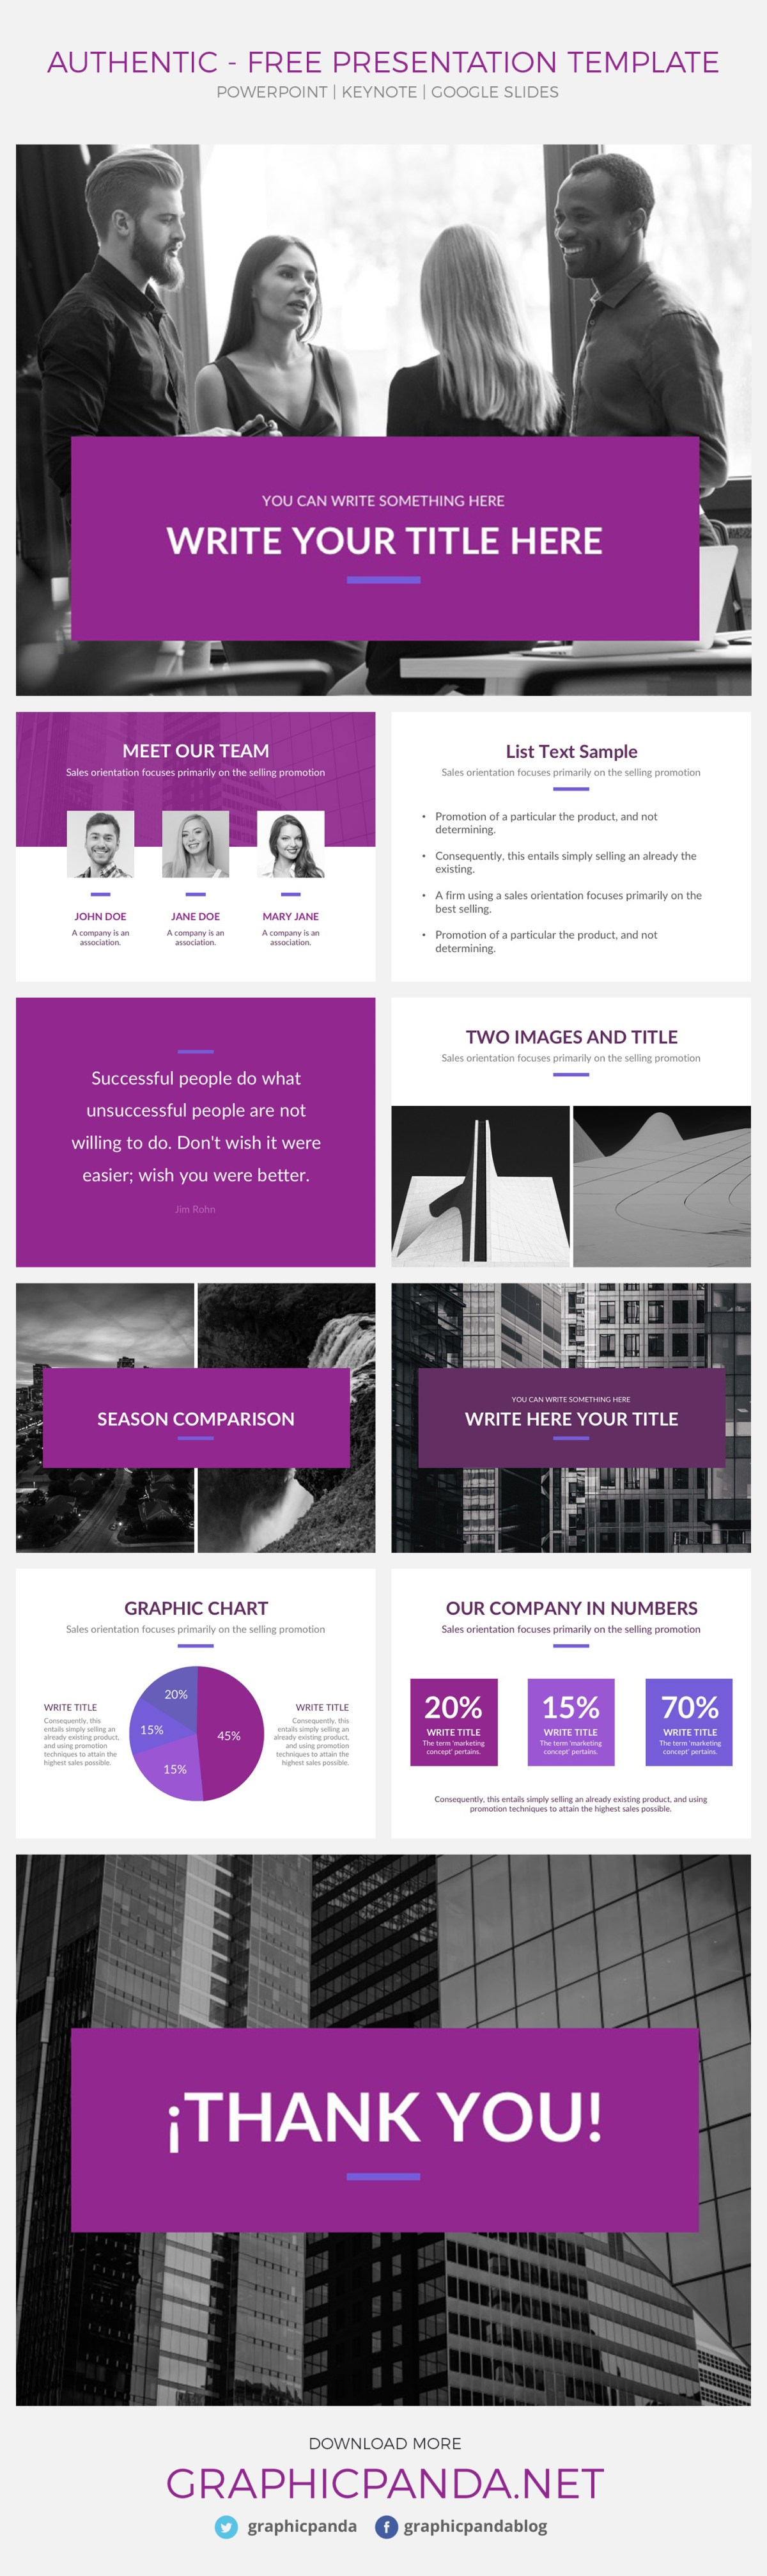 Authentic free presentation template powerpoint keynote google slides the authentic template not only saves you time but it also gives you new amazing toneelgroepblik Image collections